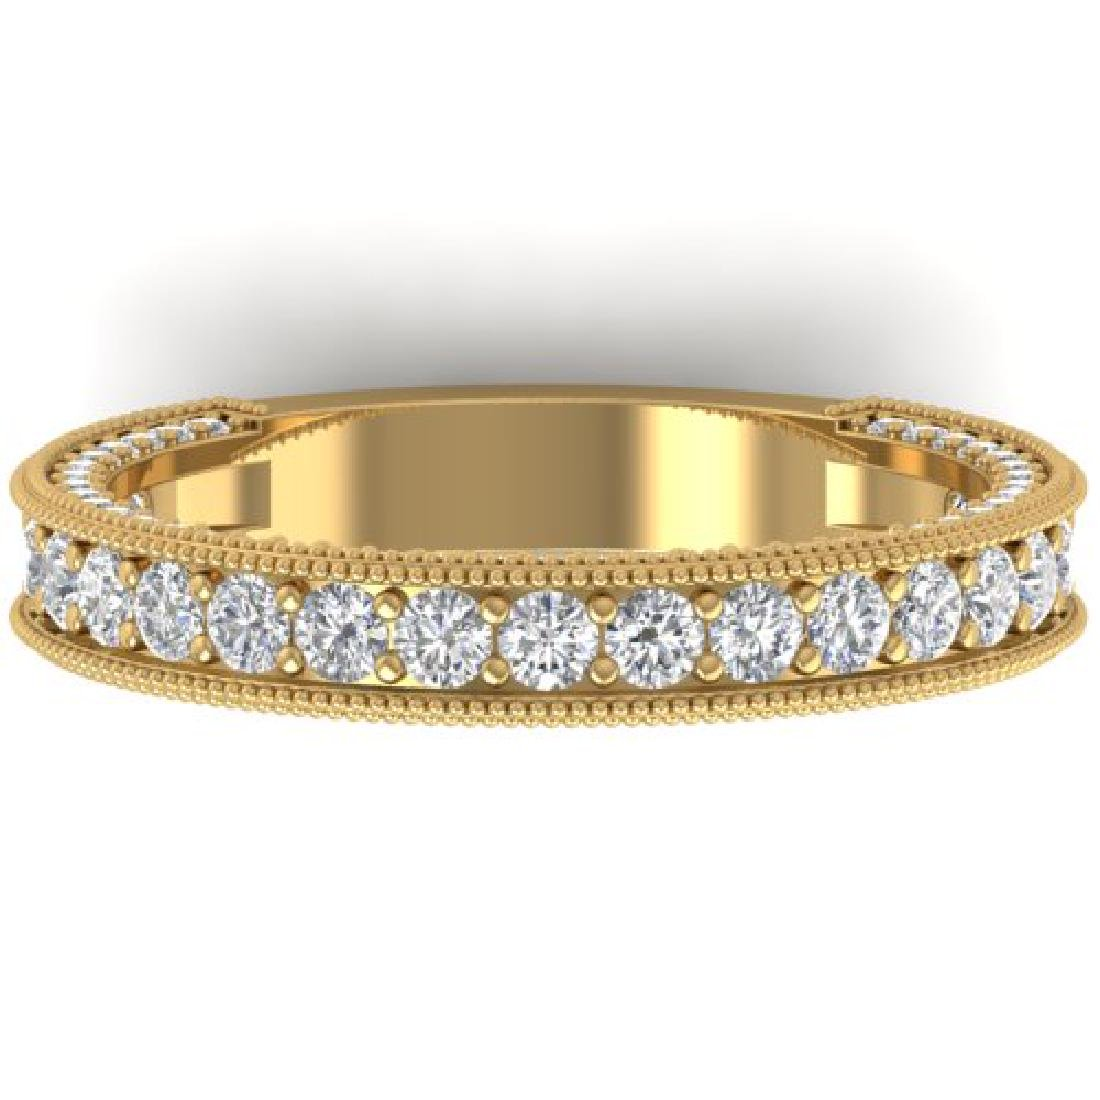 1.25 CTW VS/SI Diamond Art Deco Eternity Band Ring 18K